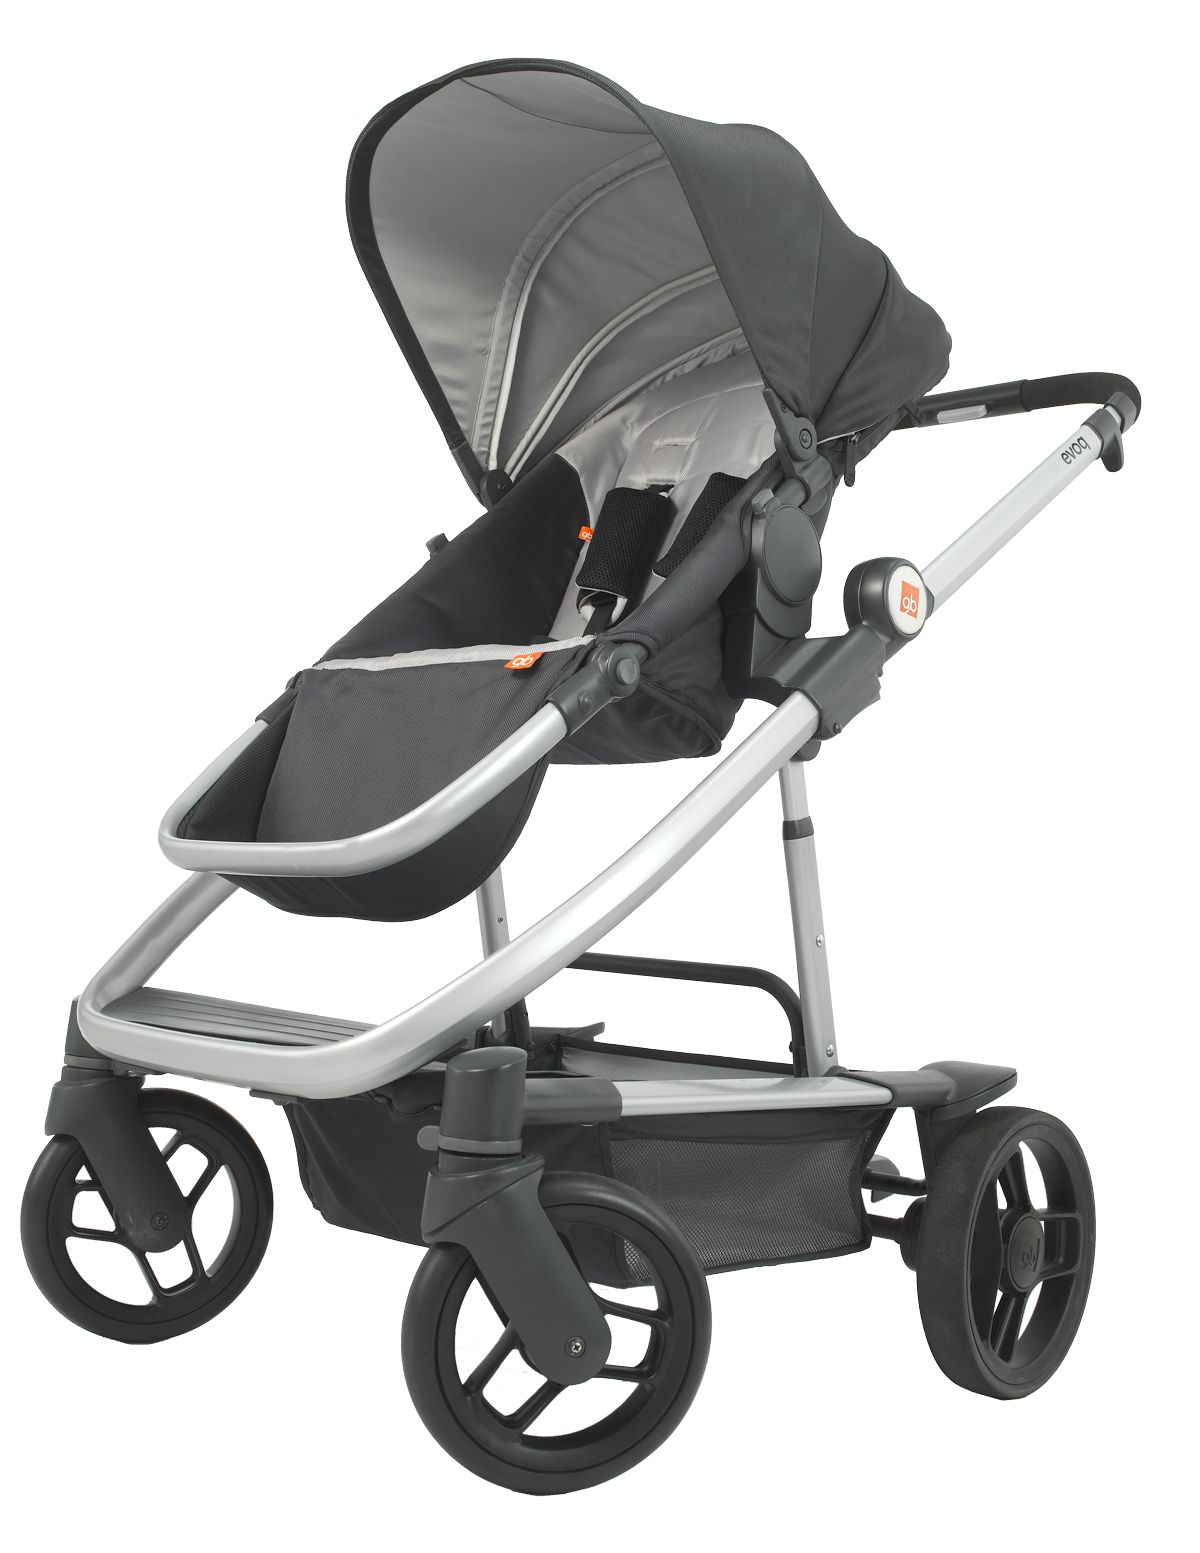 GB Evoq Travel System Stroller Review | Strollers, Travel and Awesome